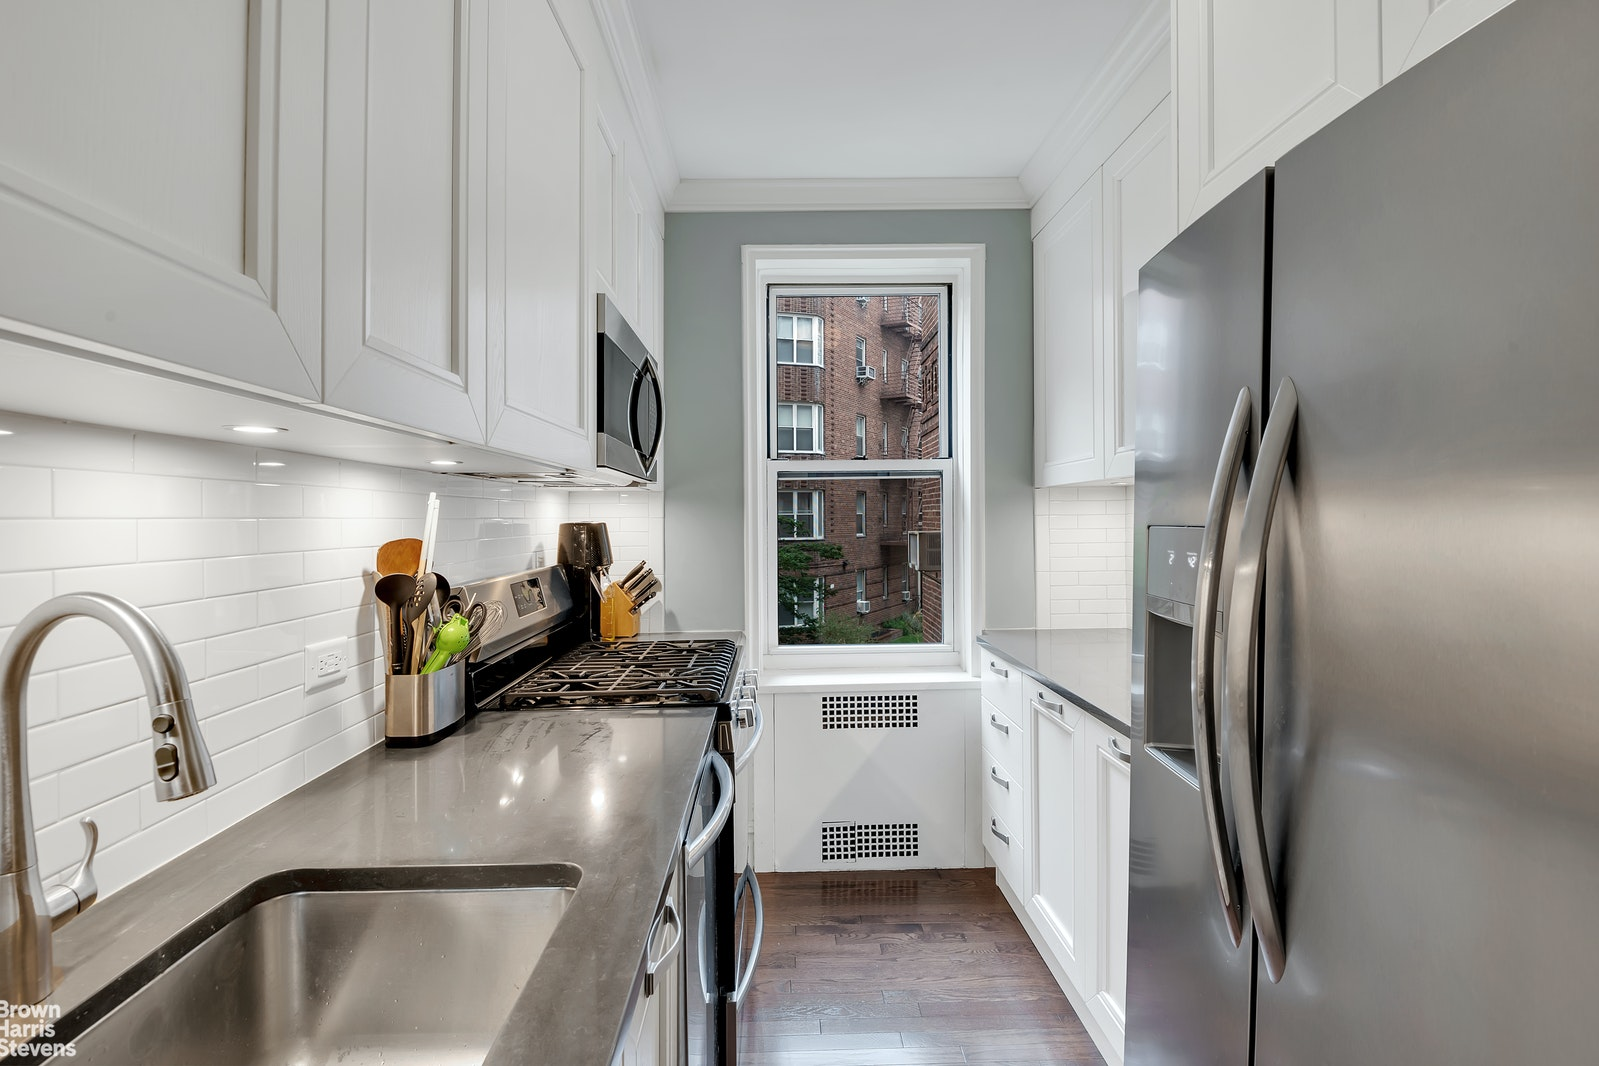 Apartment for sale at 73-12 35th Avenue, Apt F23